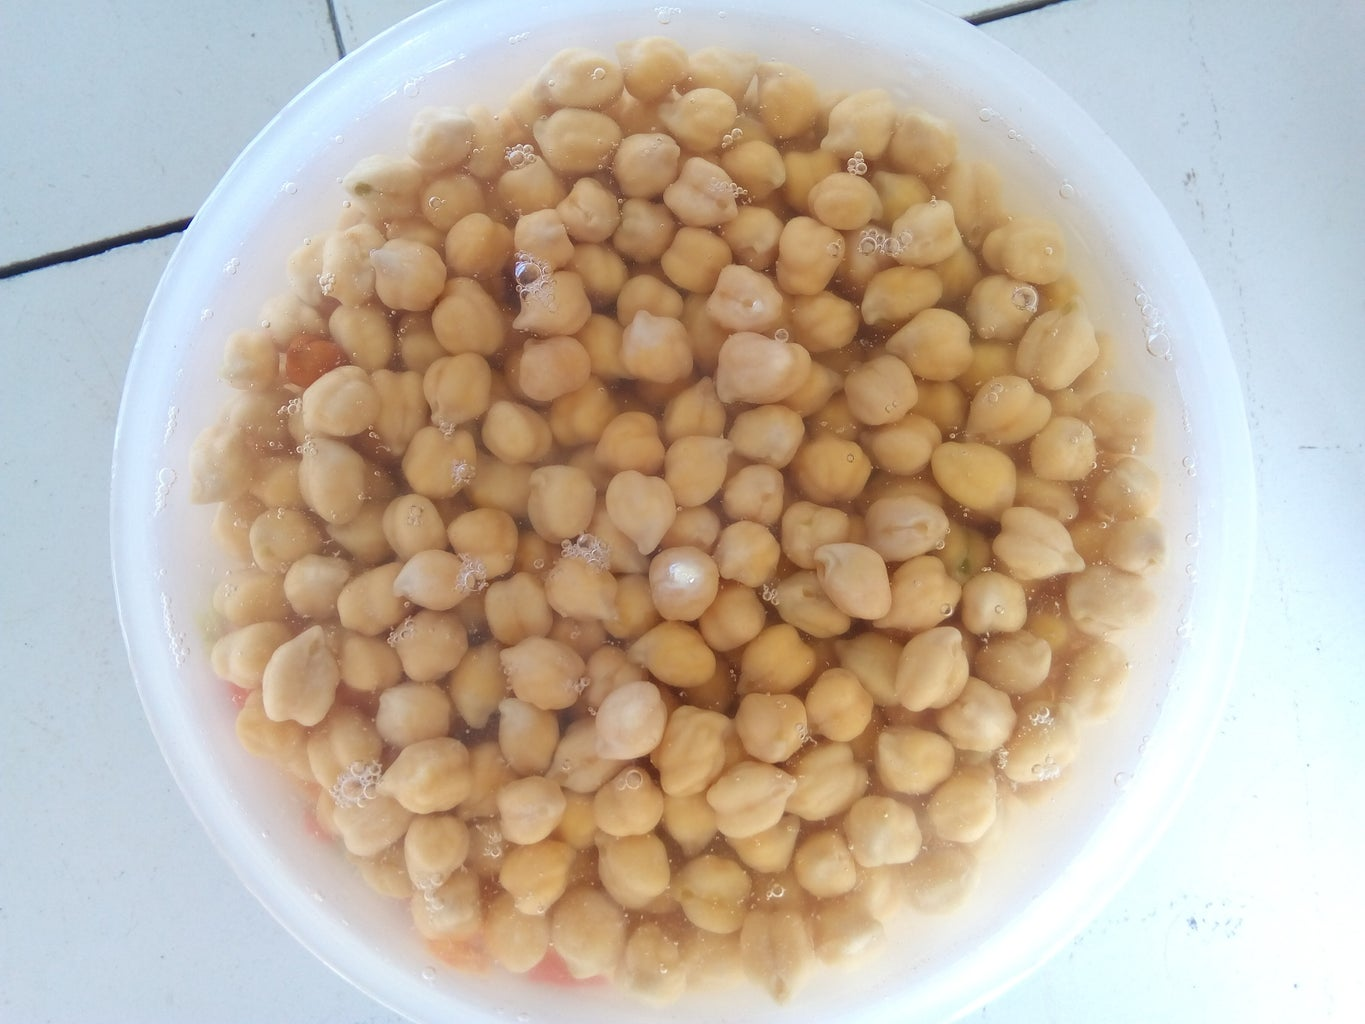 Topping: Chickpea